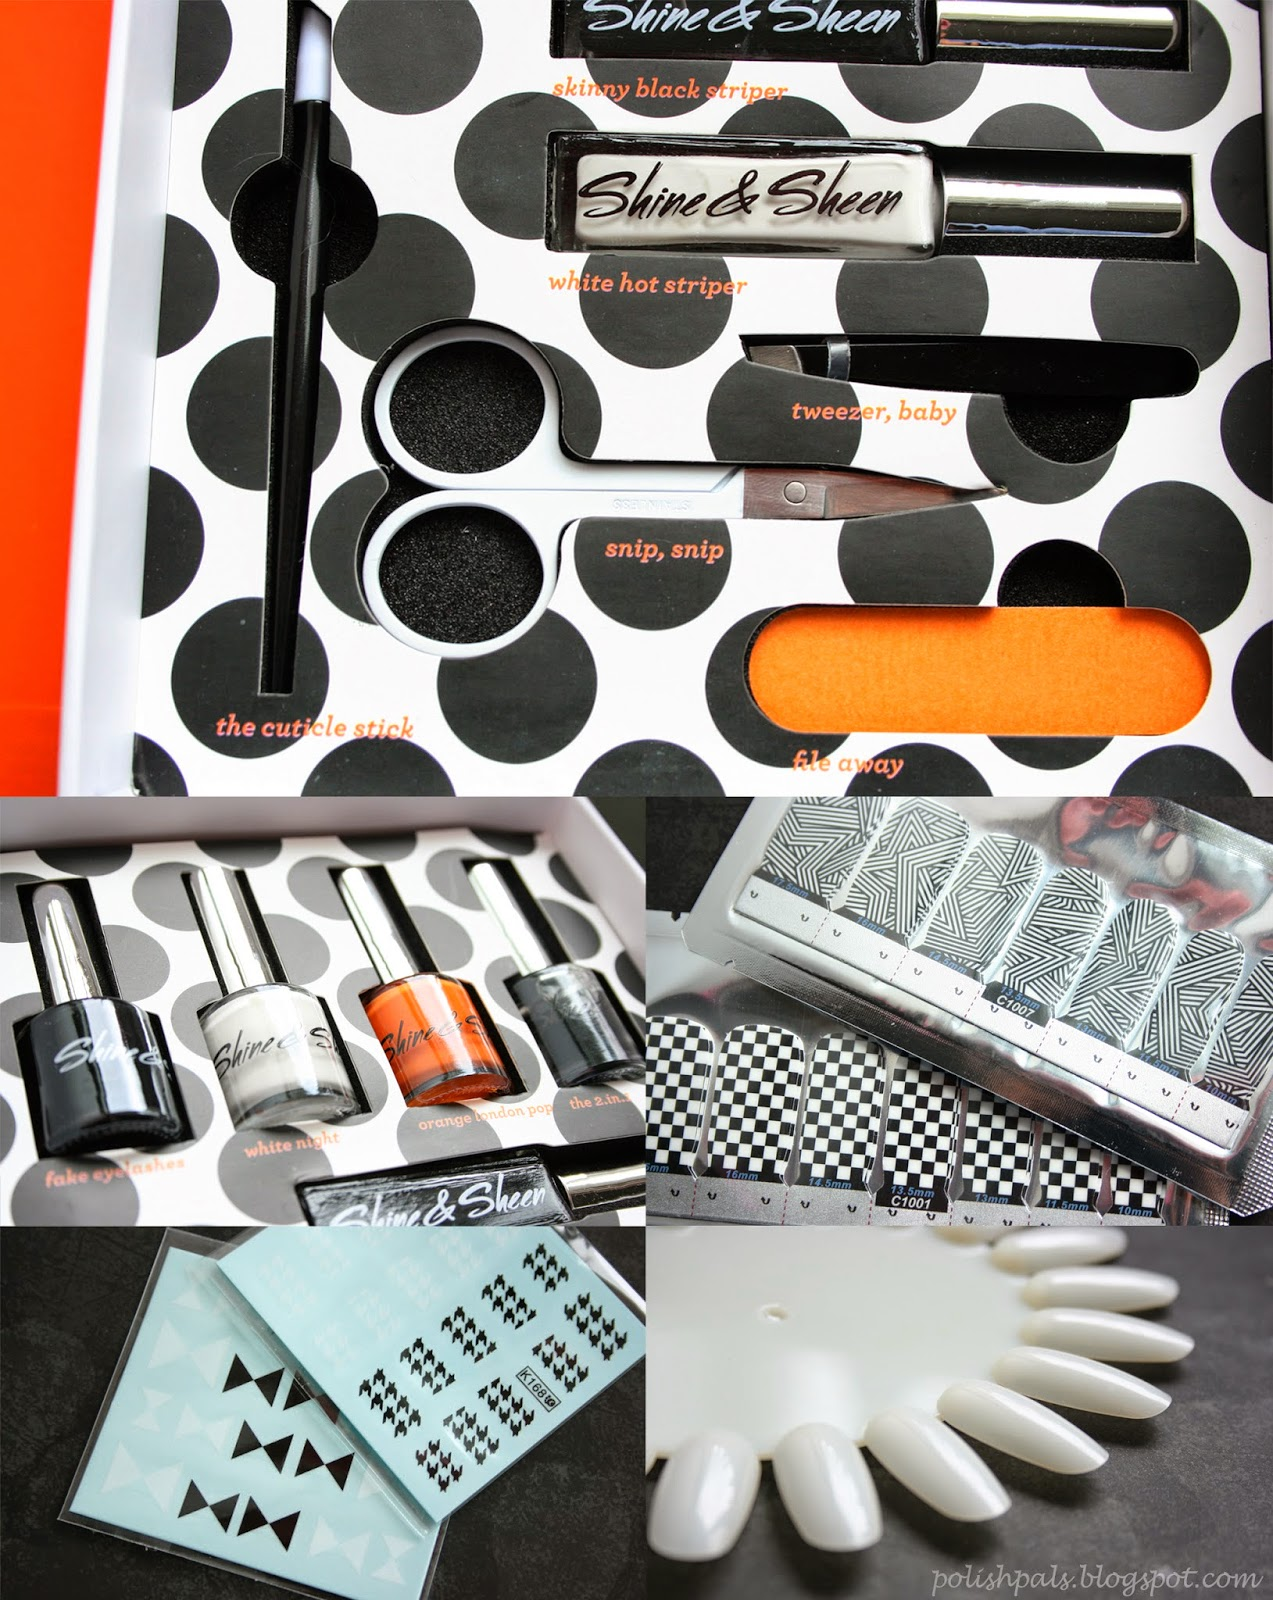 Polish Pals: Shine and Sheen Nail Art Kit Review